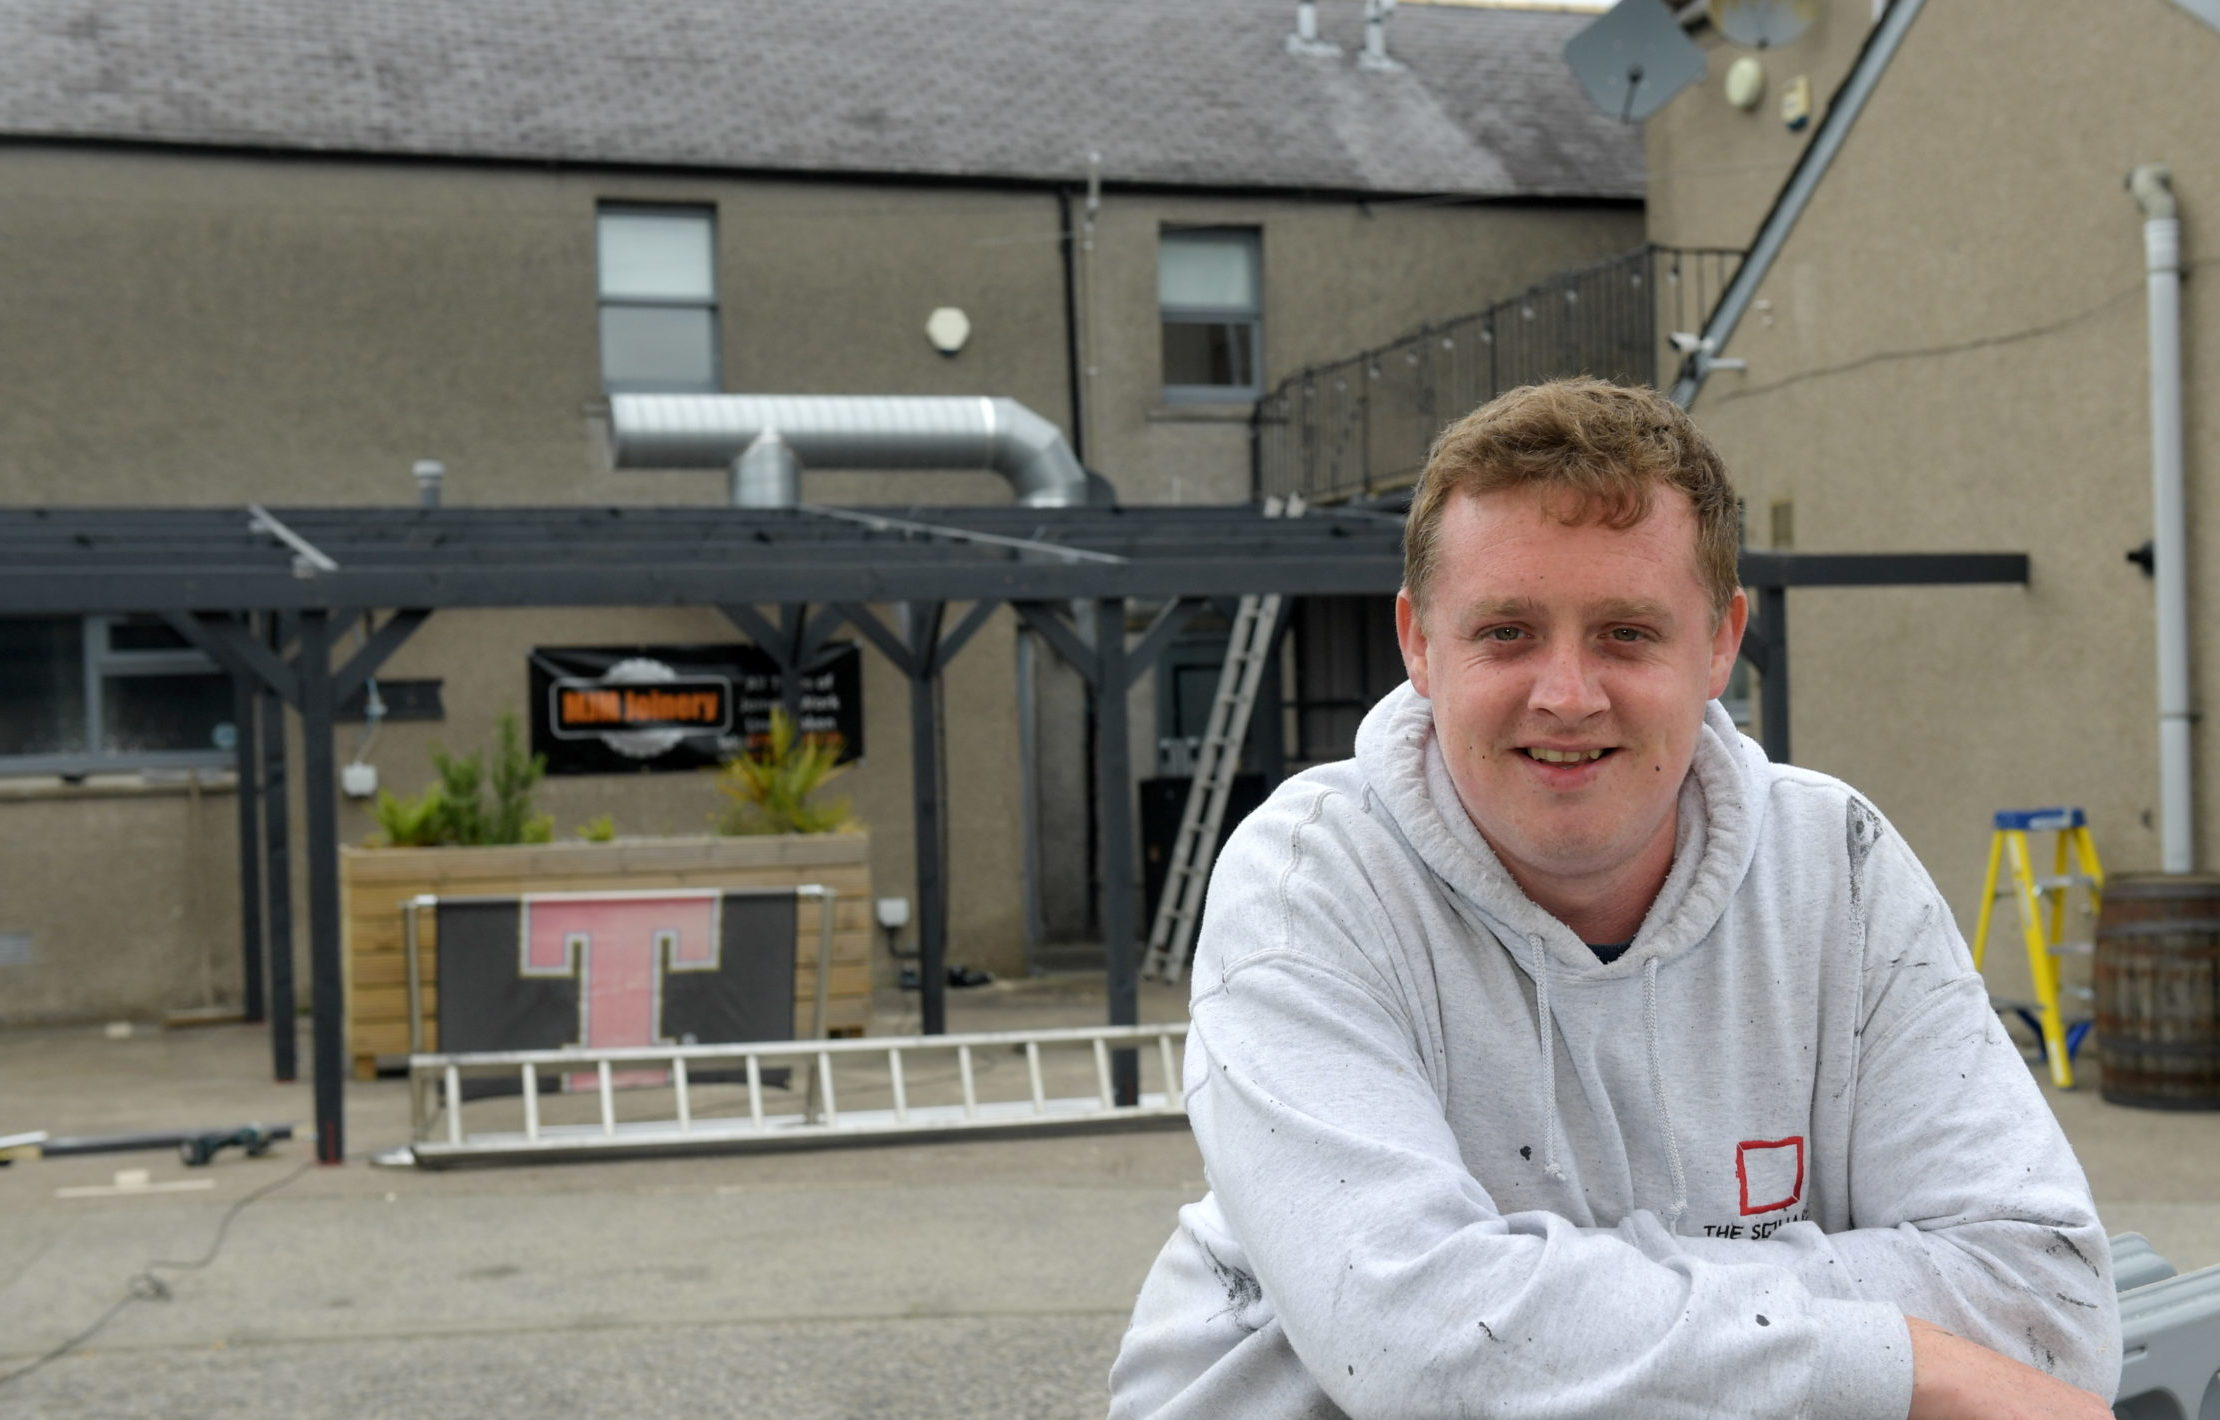 Steve MacDonald from The Square Hotel in Kintore. Picture by Kath Flannery.